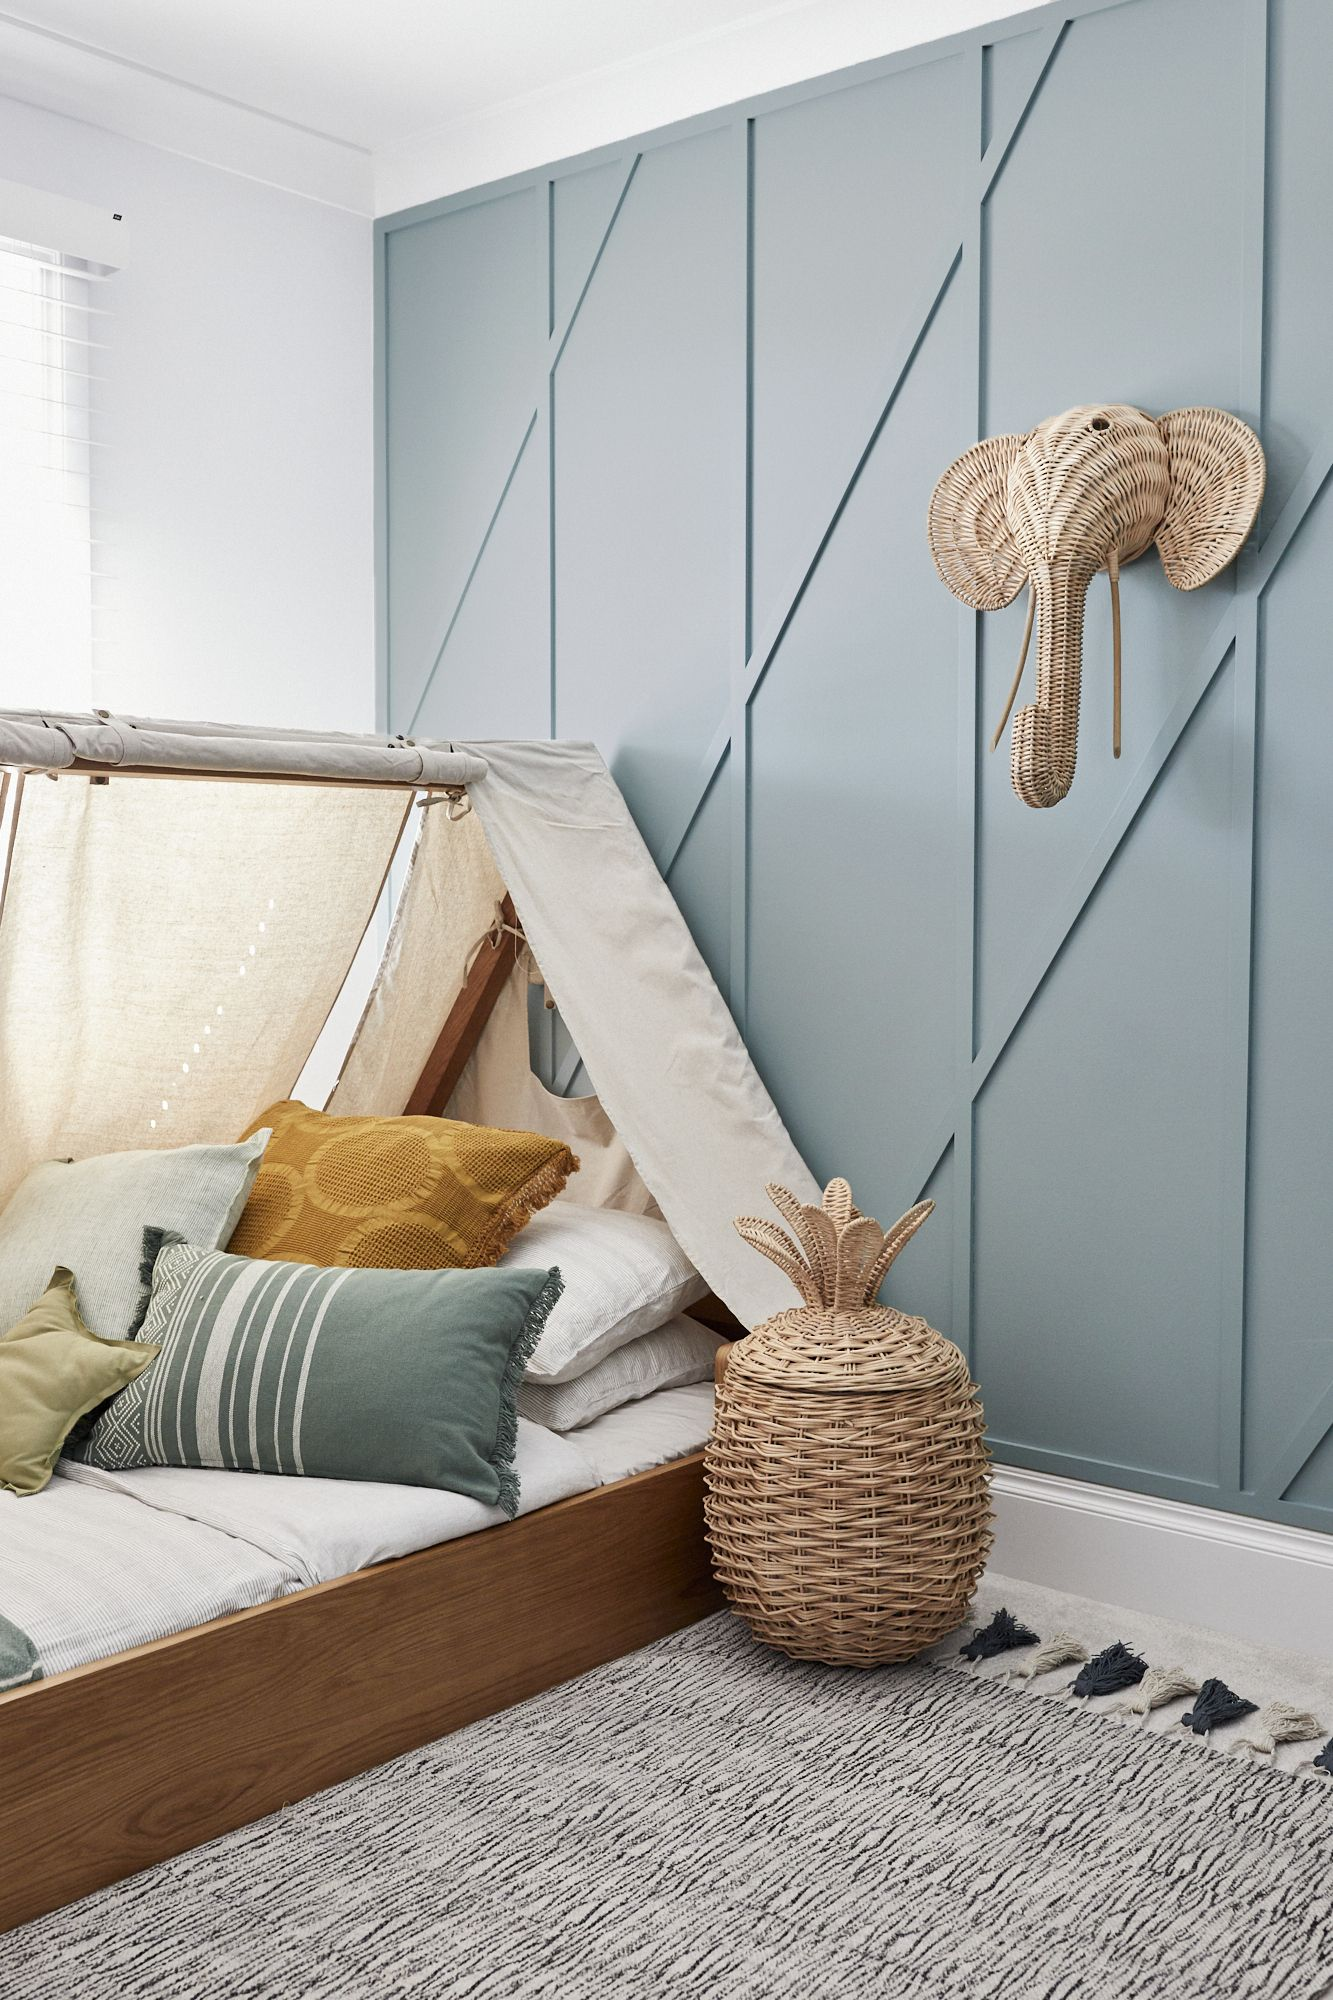 Three Birds Renovations House 11 #kidsrooms